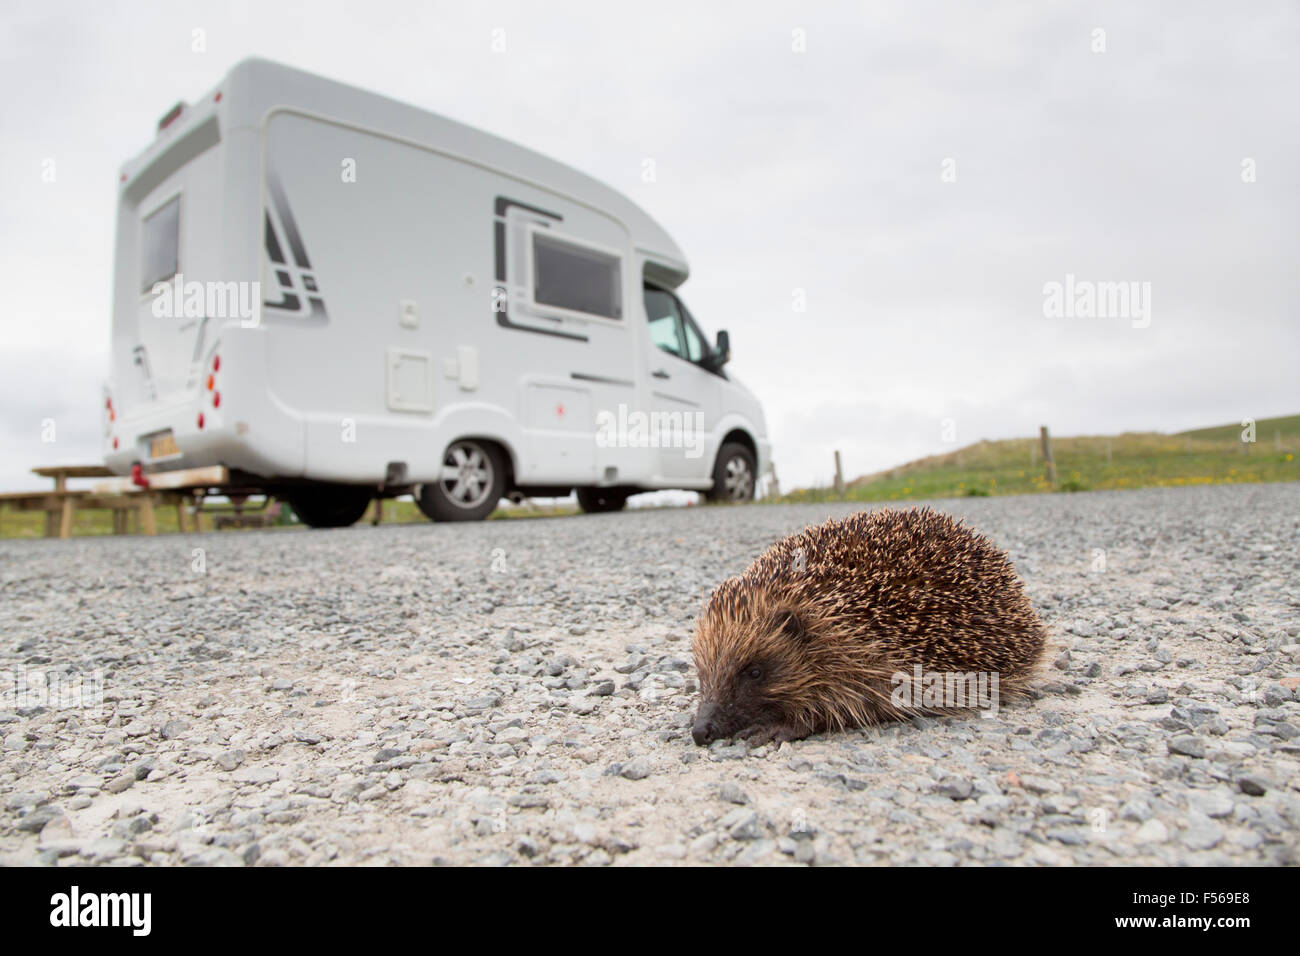 Hedgehog; Erinaceus europaeus Single With Campervan; Yell; Shetland; UK - Stock Image